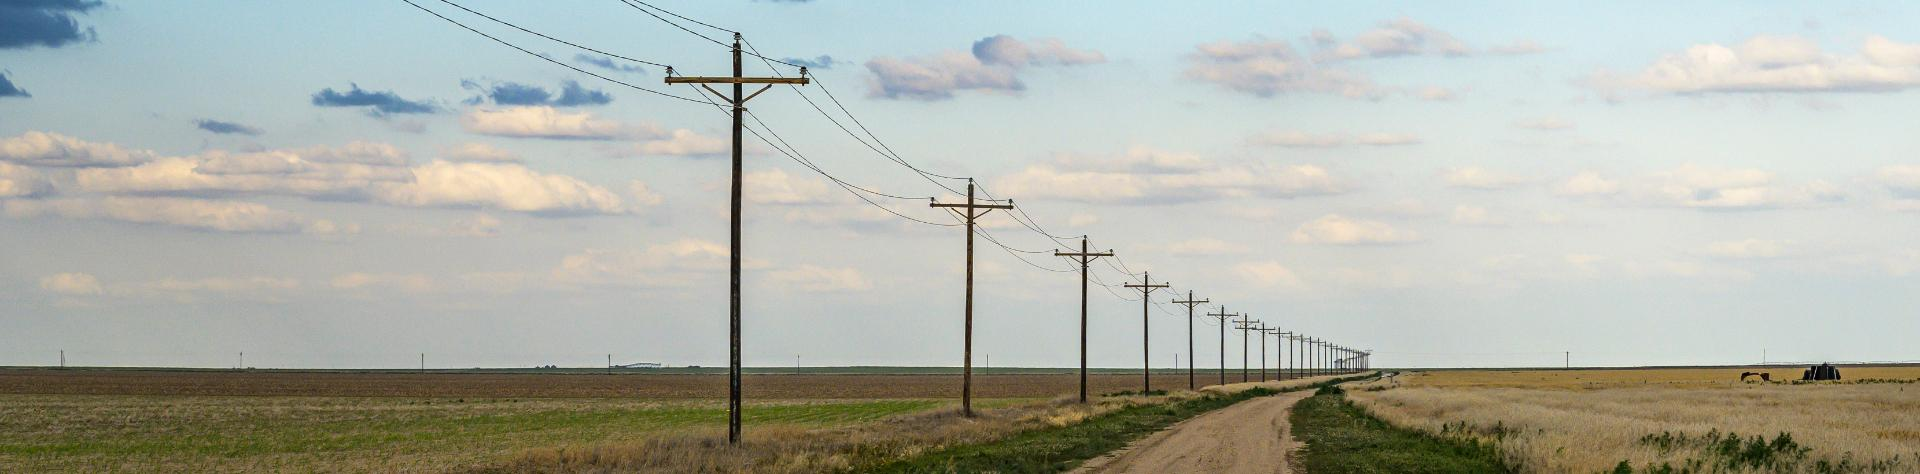 Telephone poles in rural area